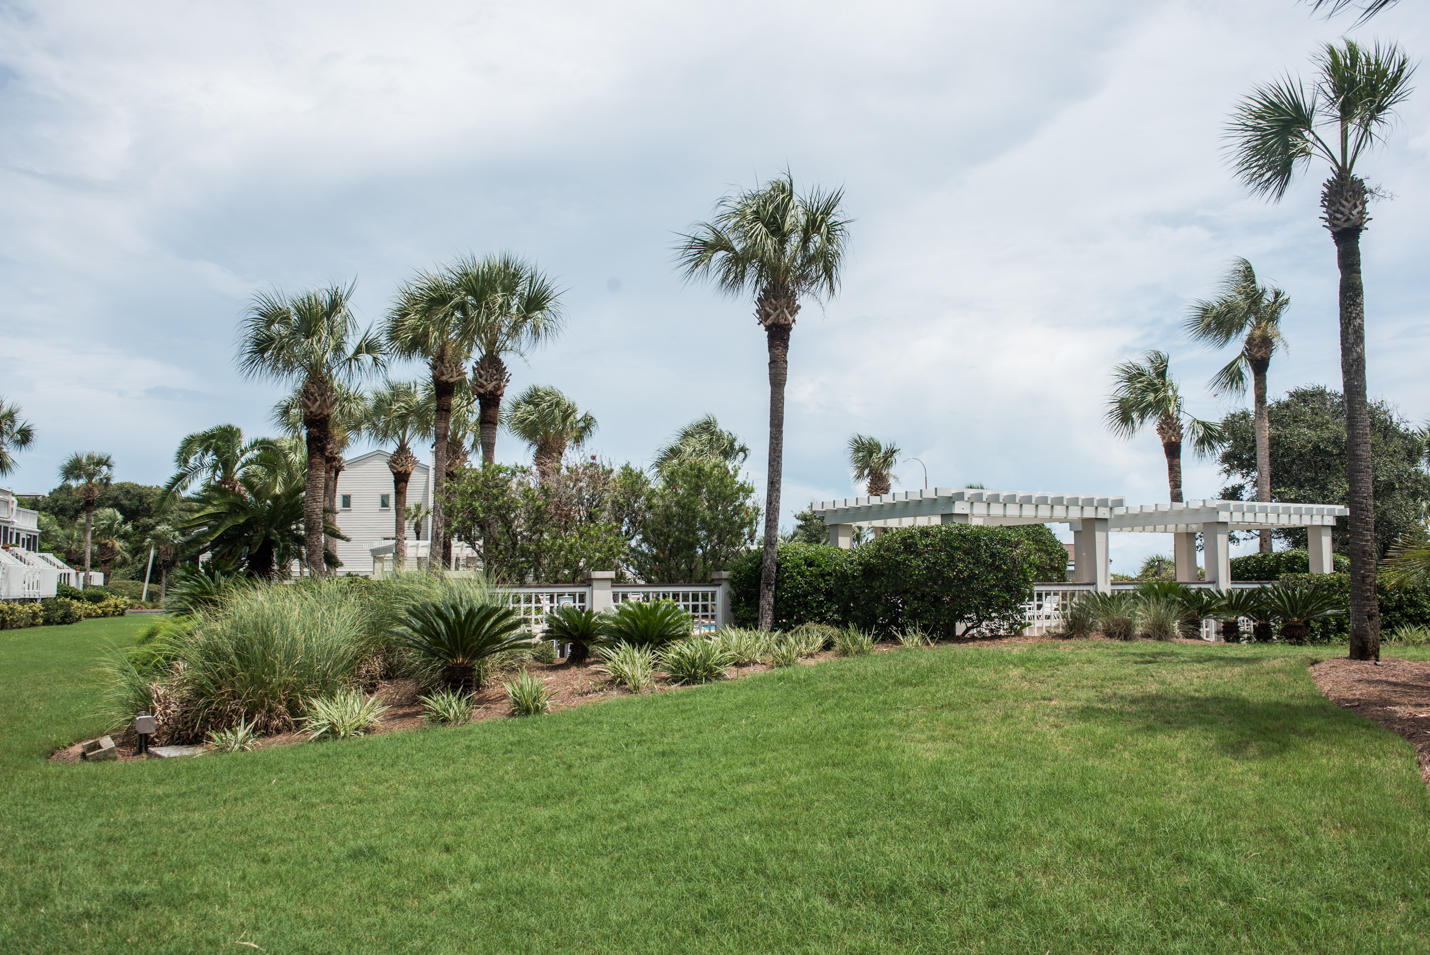 Beach Club Villas Homes For Sale - 66 Beach Club Villas, Isle of Palms, SC - 22